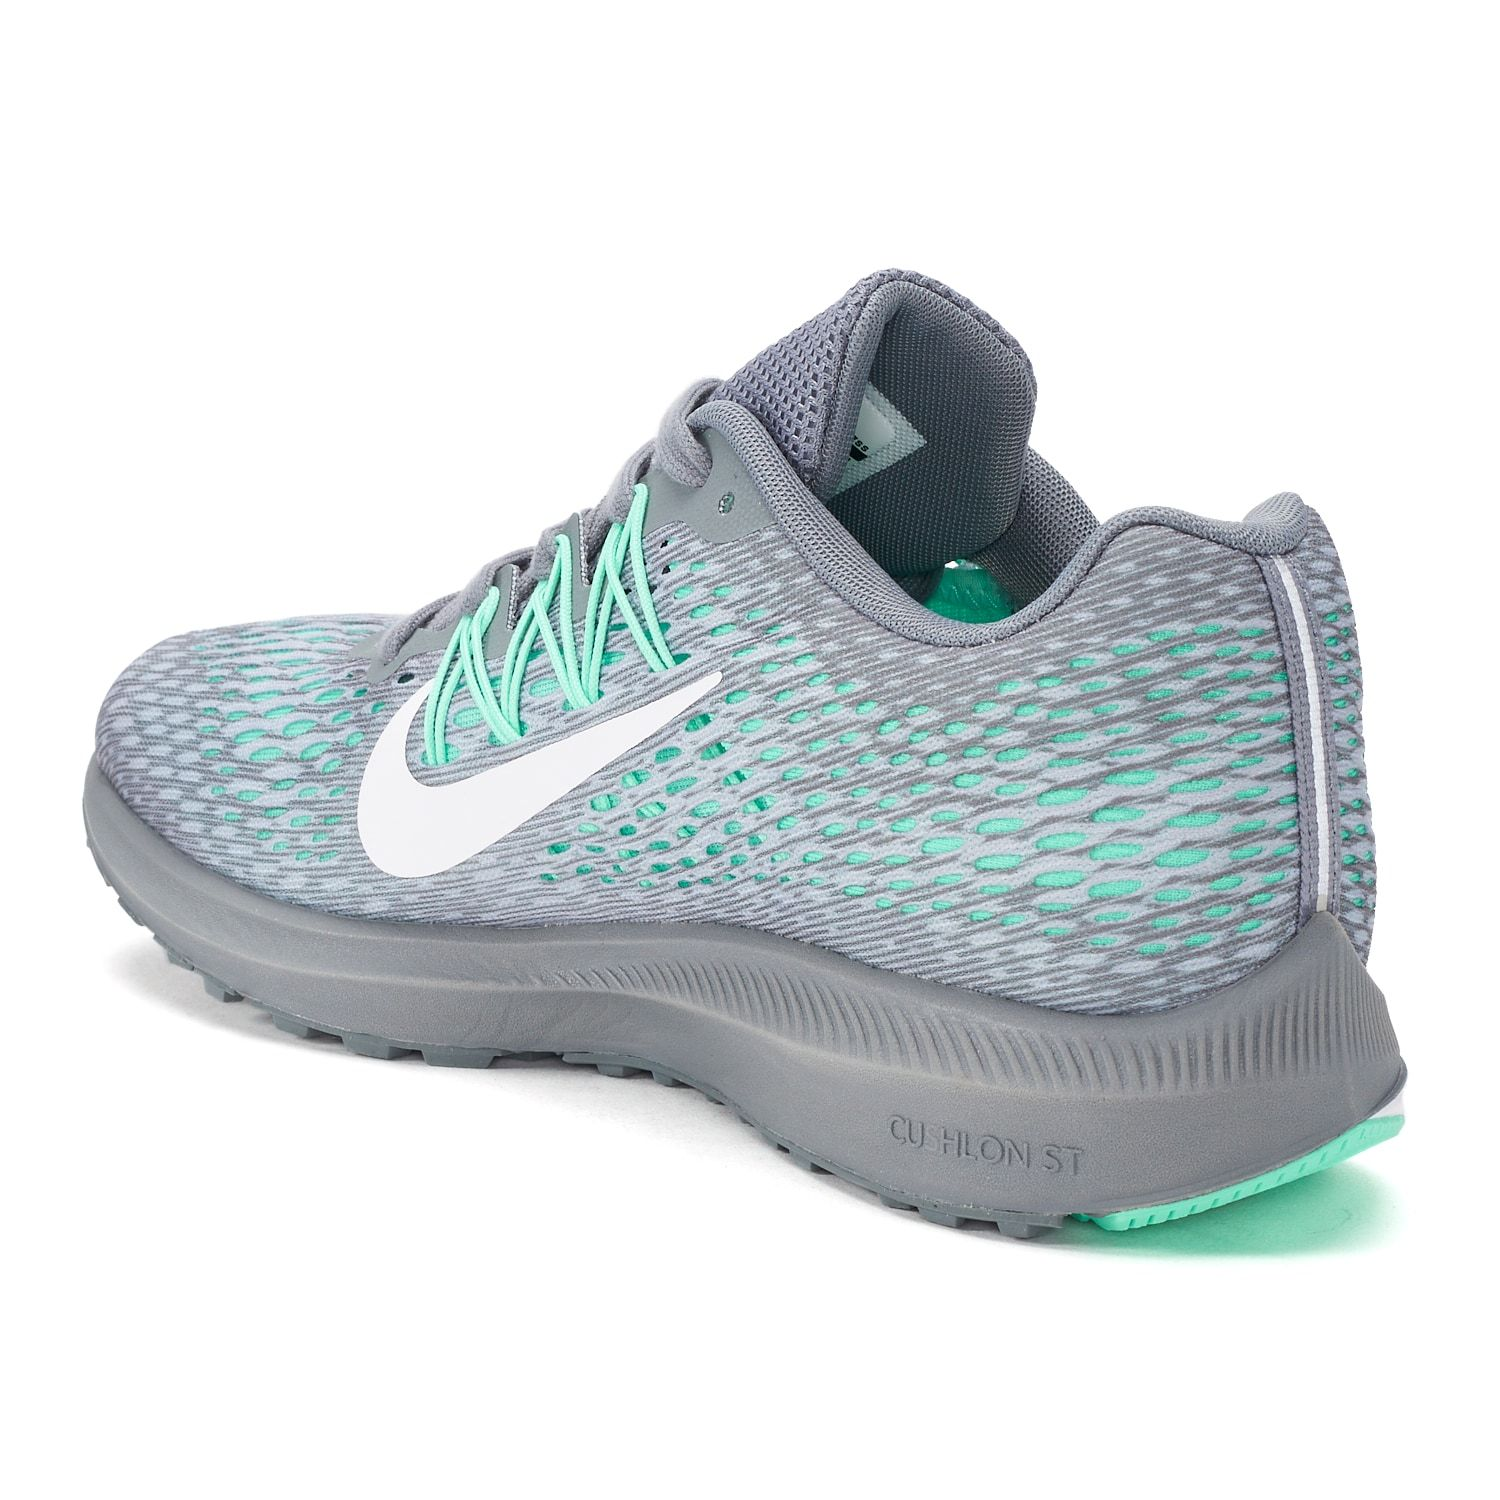 best service cfc26 f703a Nike Air Zoom Winflo 5 Women's Running Shoes #Zoom, #Air ...